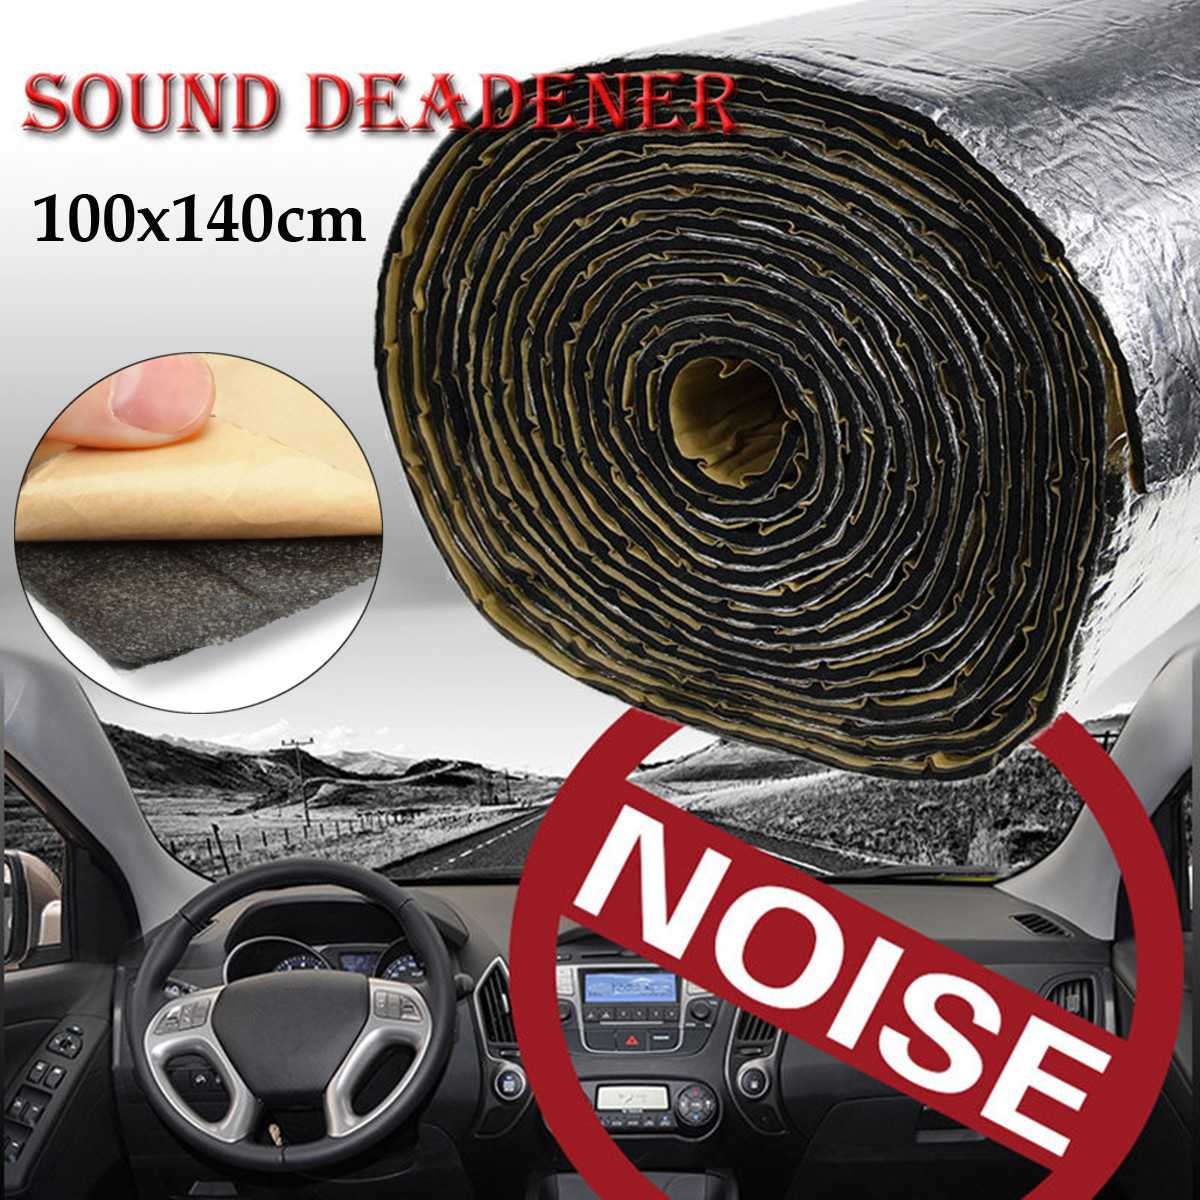 100cm X 140cm Car Truck Proofing Deadening Anti-noise Sound Insulation Cotton Heat Closed Cell Foam Car Accessories Hot